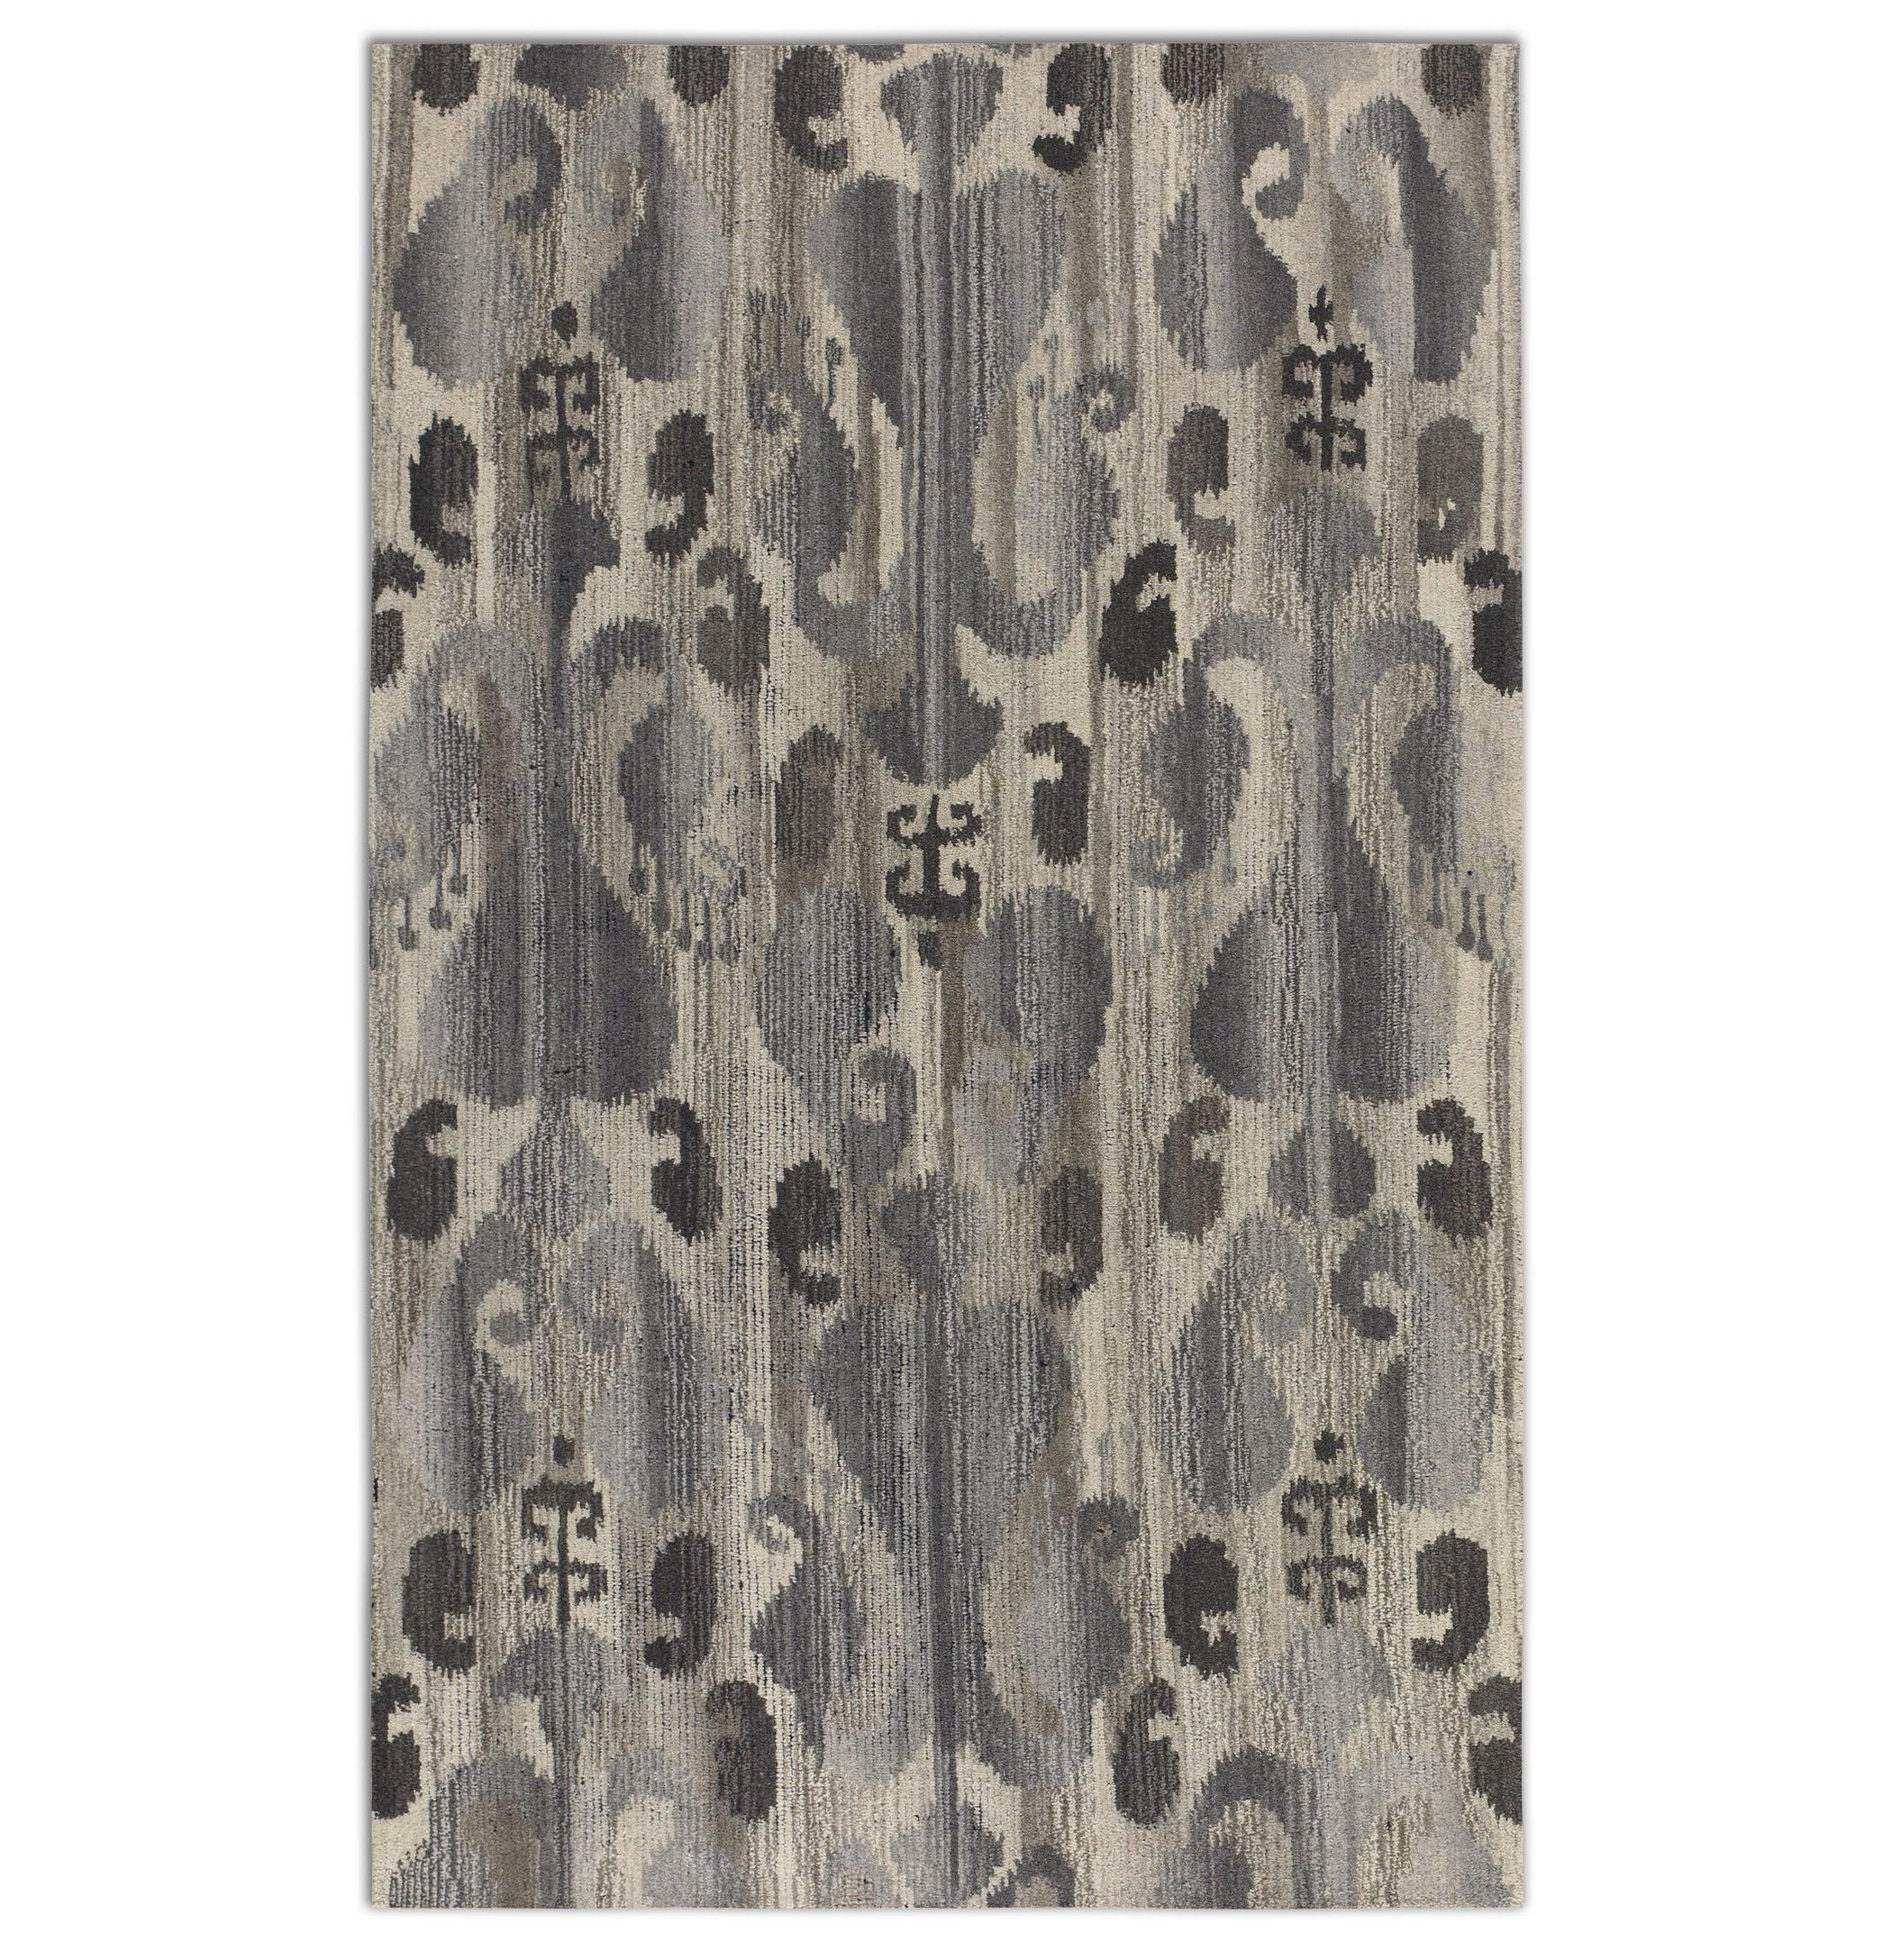 Uttermost Rugs Sepino 9 X 12 Rug - Gray - Item Number: 73048-9